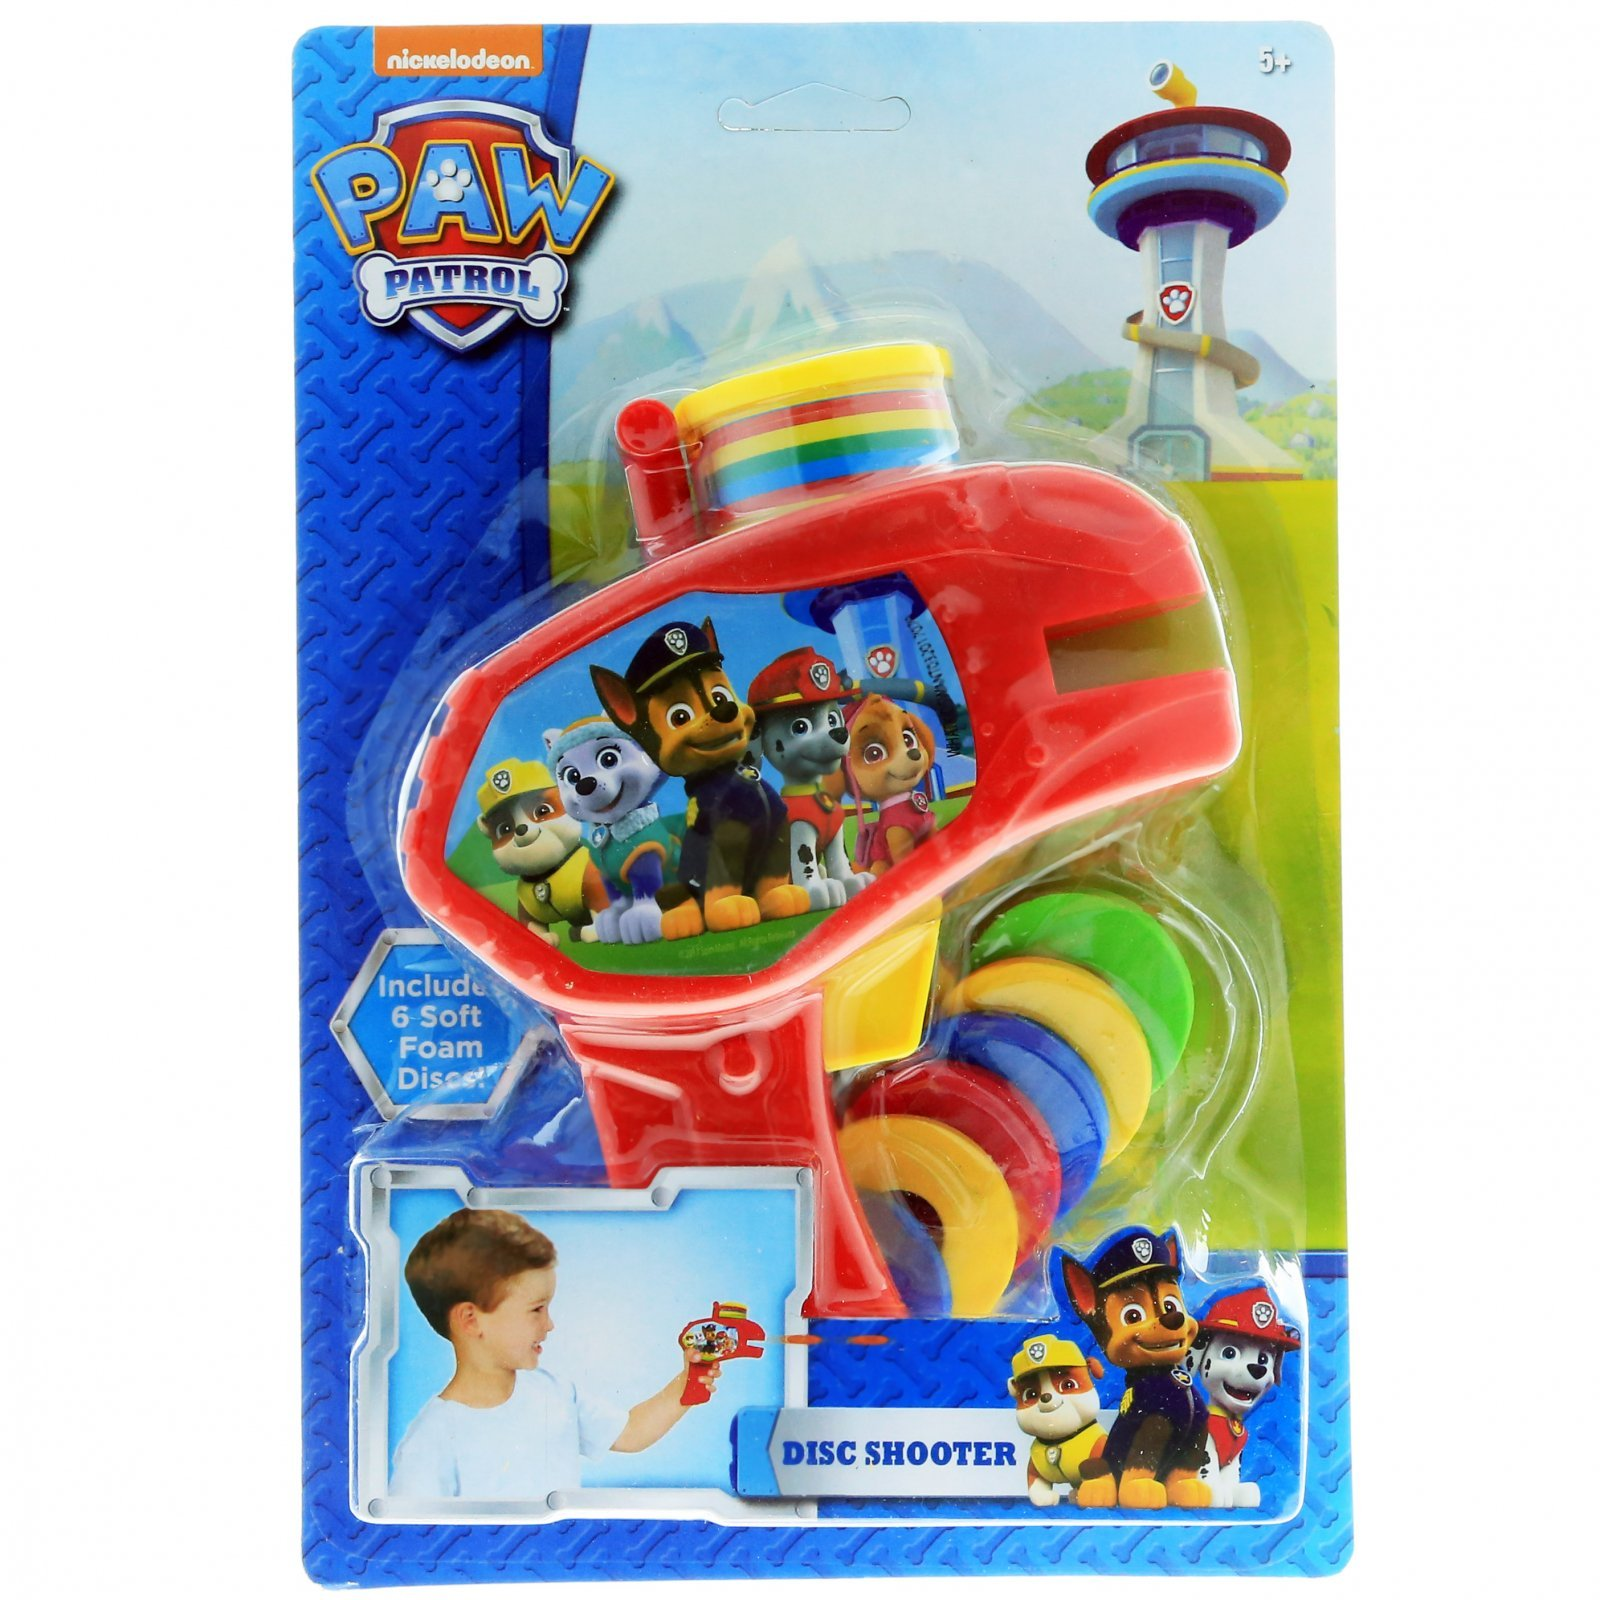 6pc Nickelodeon Paw Patrol Soft Foam Disc Shooter Red Blaster